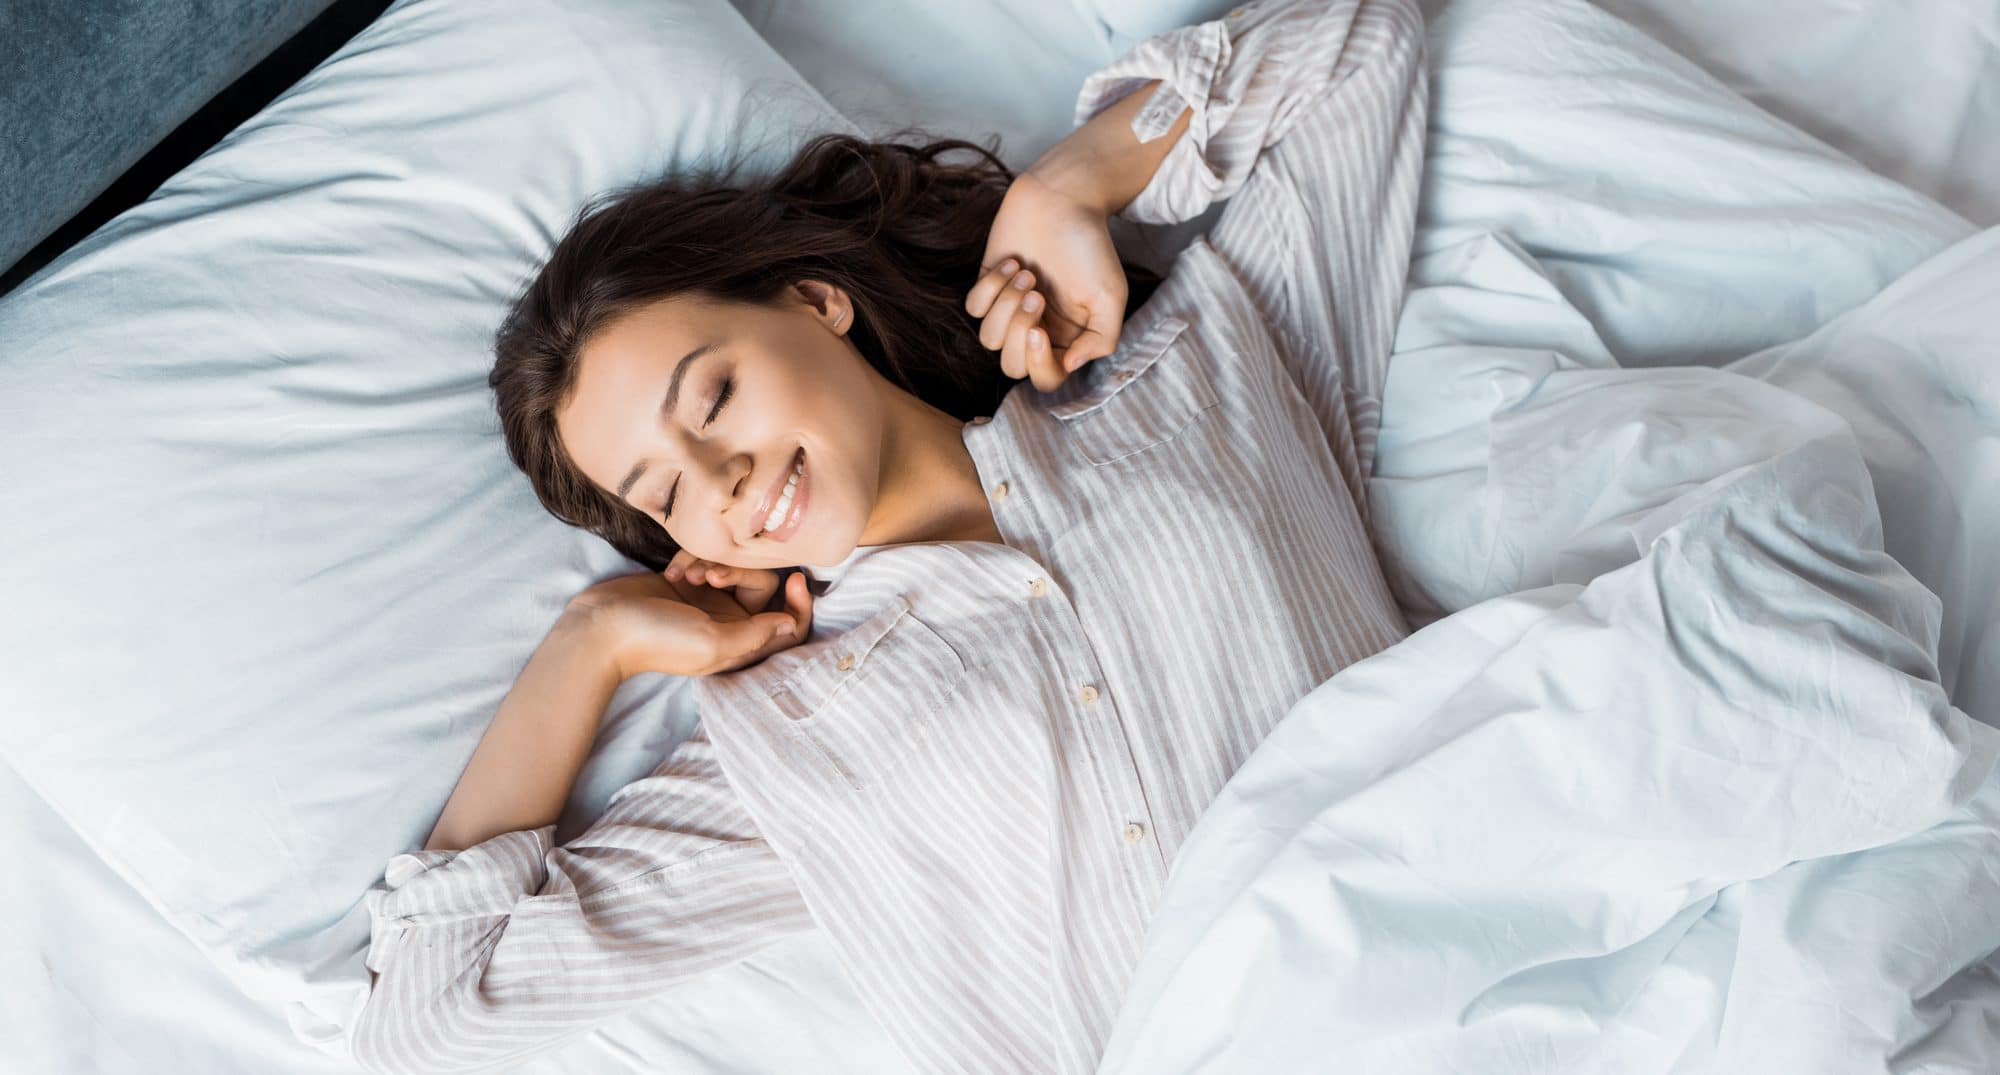 Start the Day Off Right: 5 Things to Try When You Wake Up for a Better Day